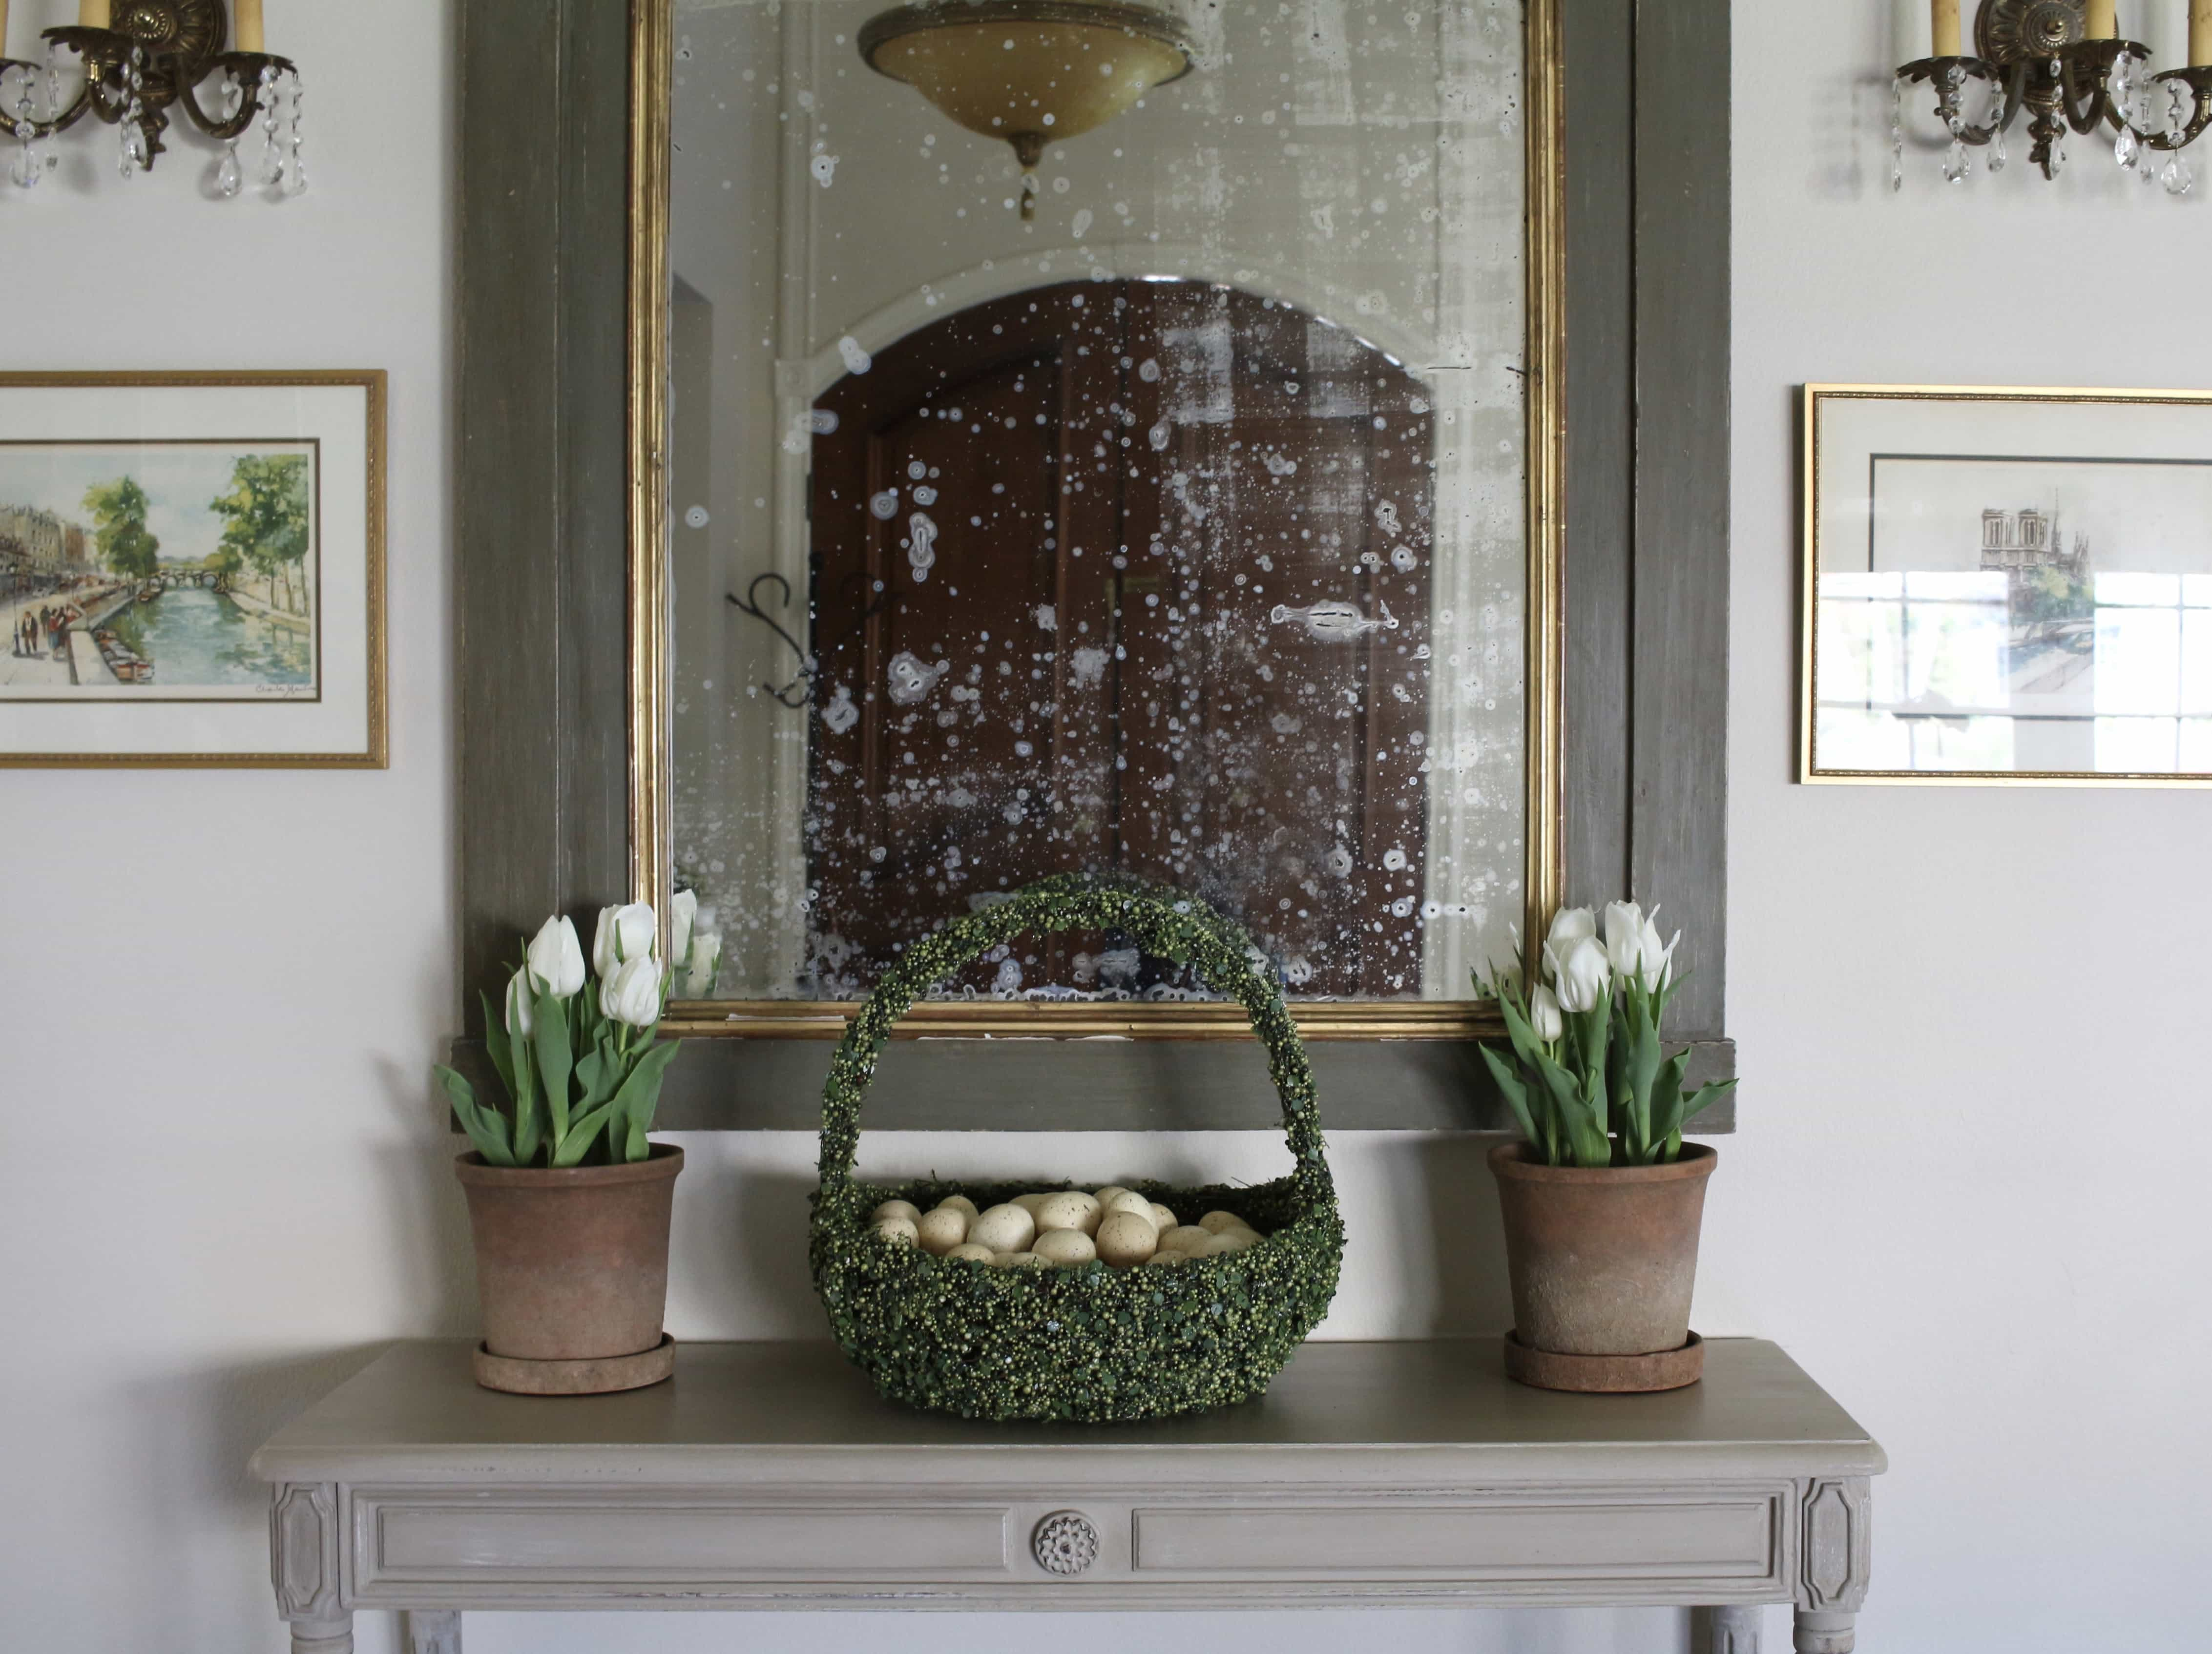 entry-easter-decor-tulips